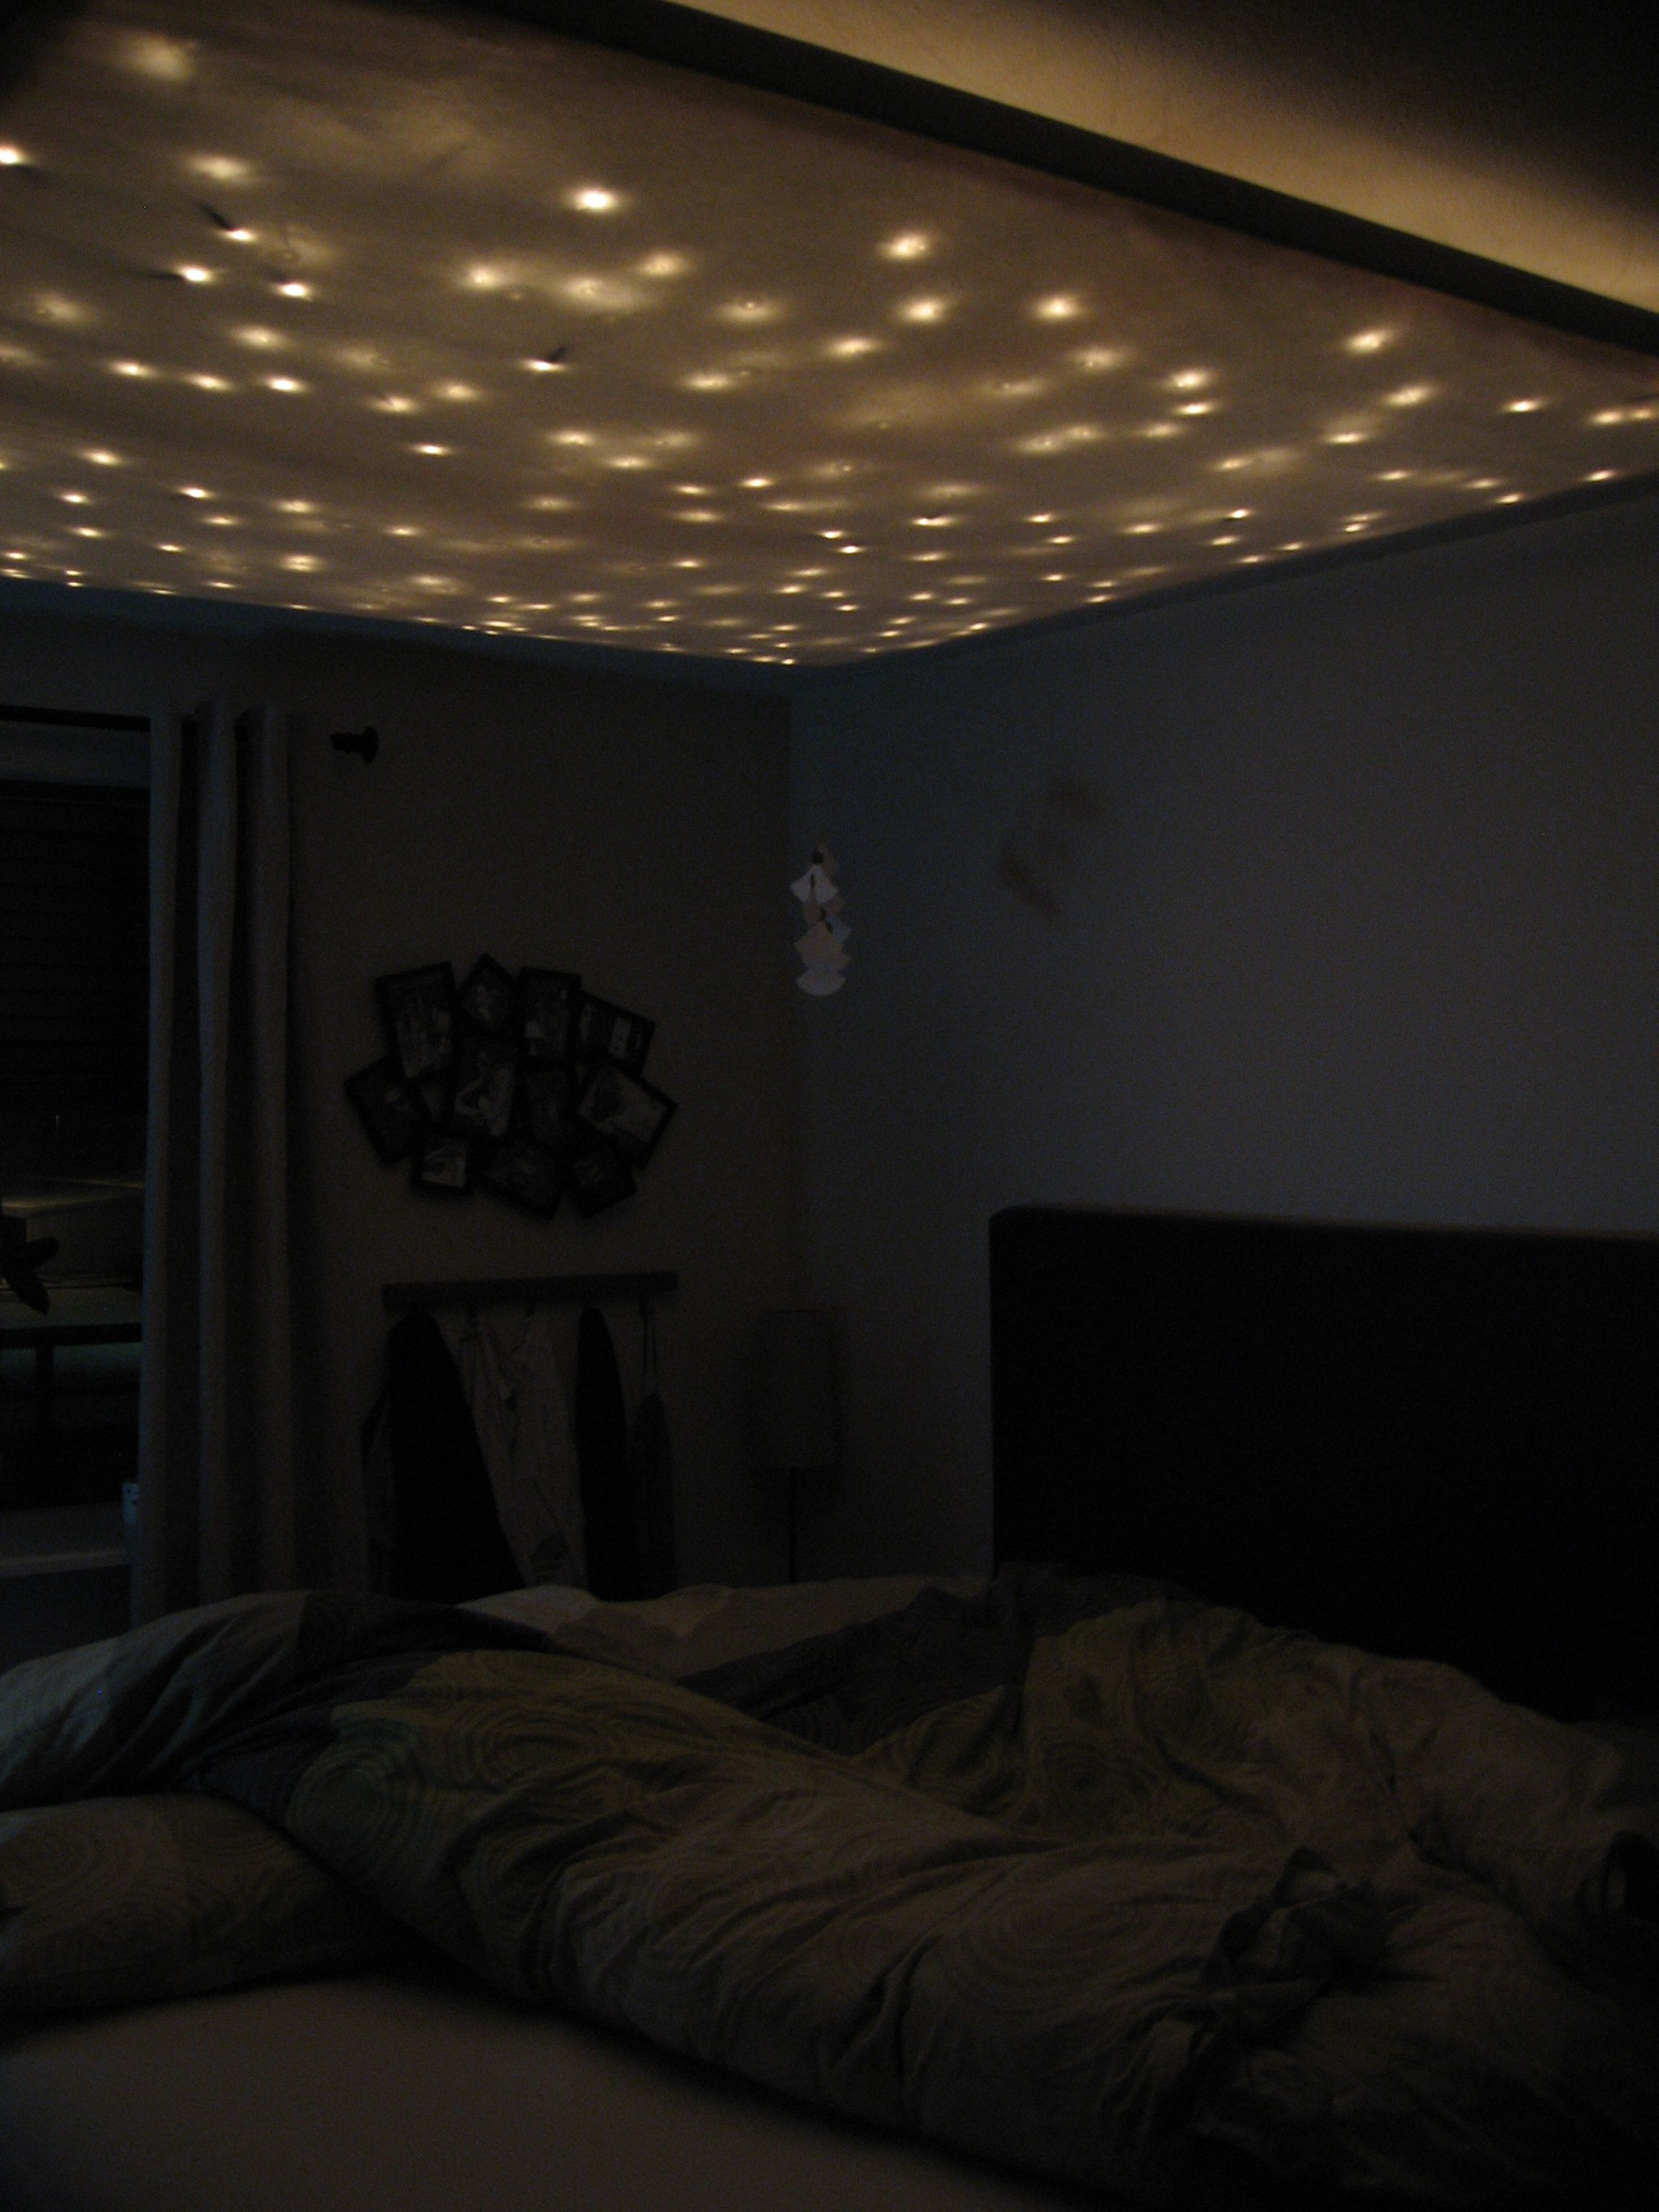 Bedroom ceiling lights stars - Mood Lighting W Xmas Lights And Fabric Http Www Reddit